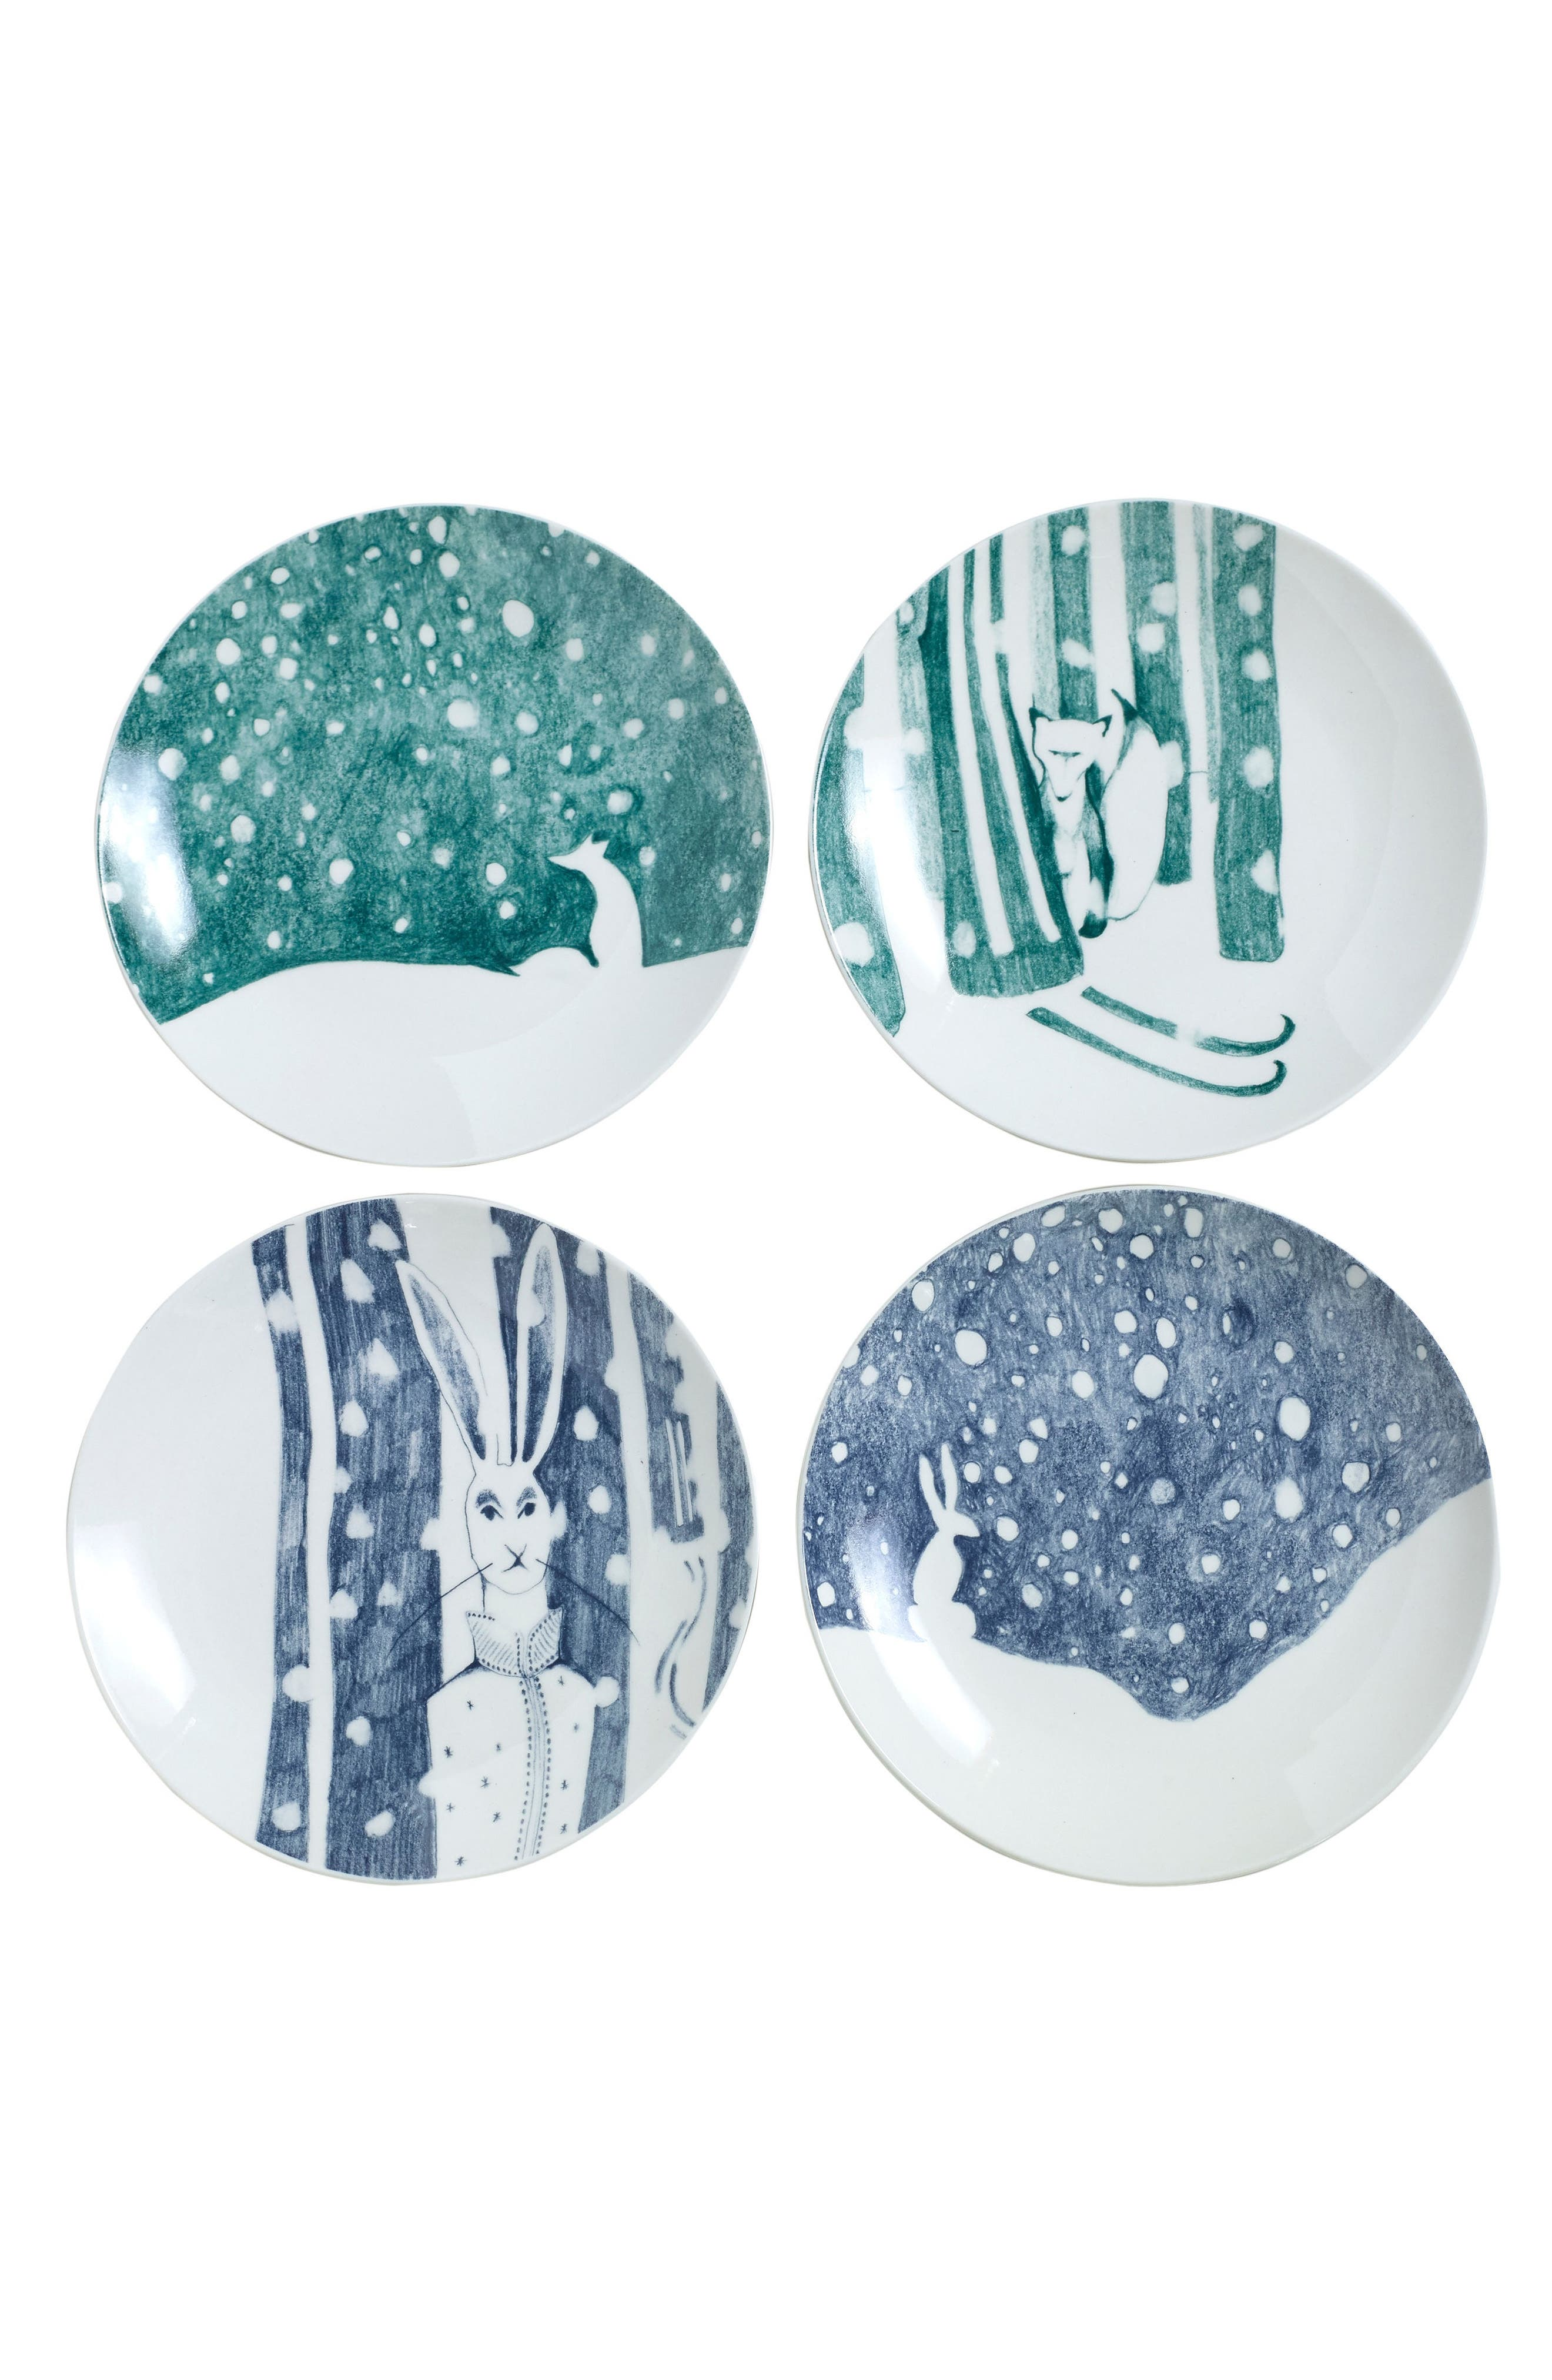 Eric & Eloise Forest Set of 4 Plates,                             Main thumbnail 1, color,                             400